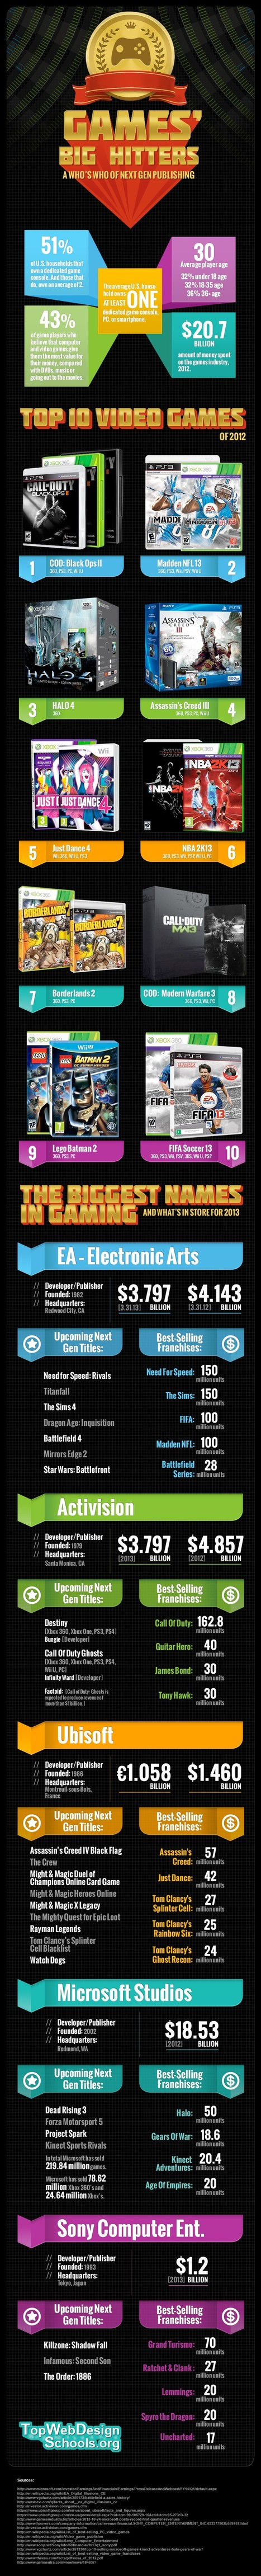 Biggest Names And Their Biggest Games! | Tips And Tricks For Pc, Mobile, Blogging, SEO, Earning online, etc... | Scoop.it